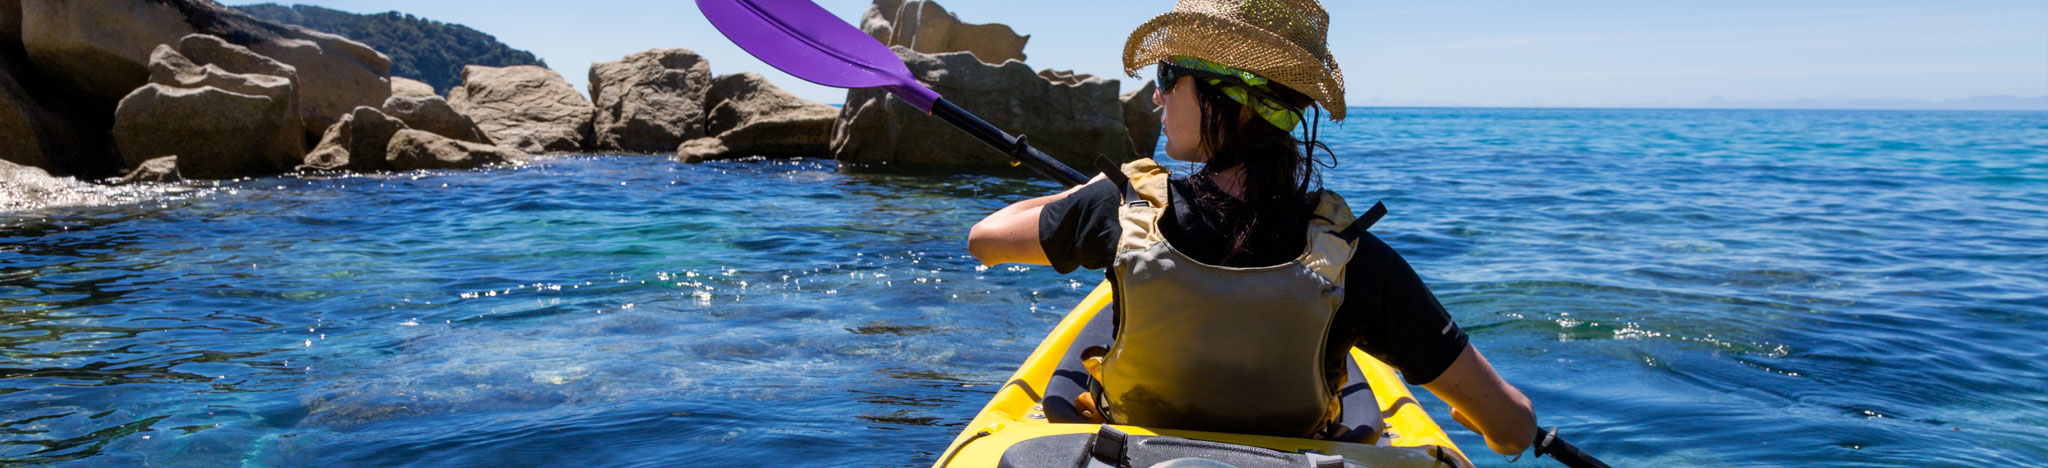 Kayaking - New Zealand Luxury Vacations